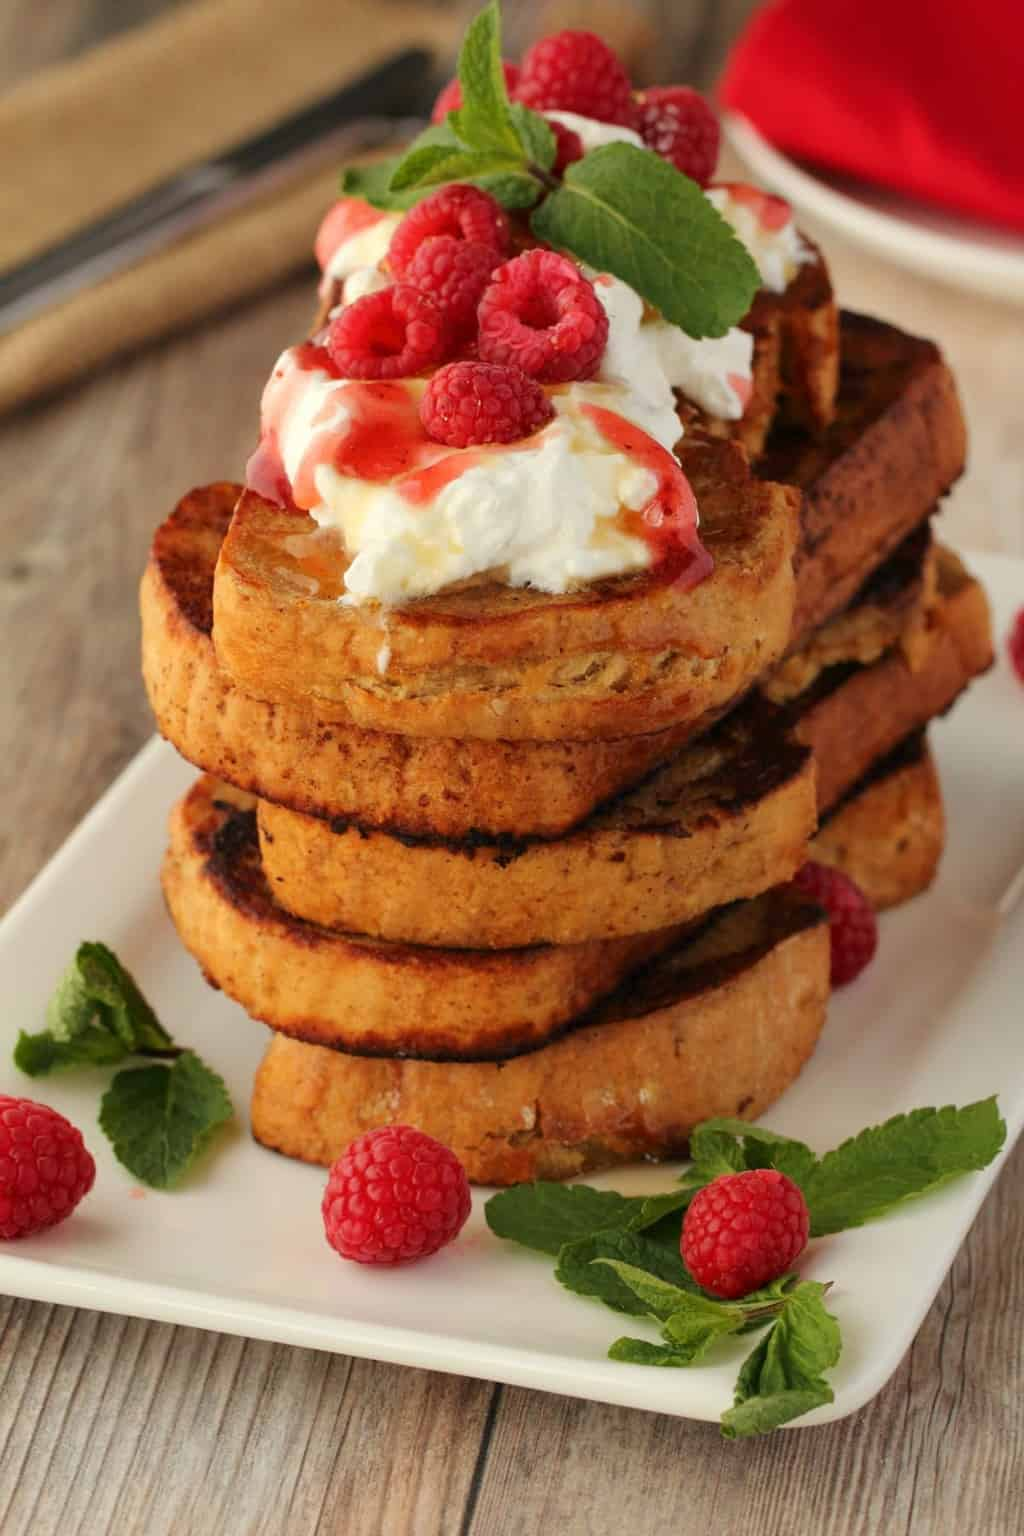 A stack of vegan french toast topped with vegan whipped cream and fresh raspberries.